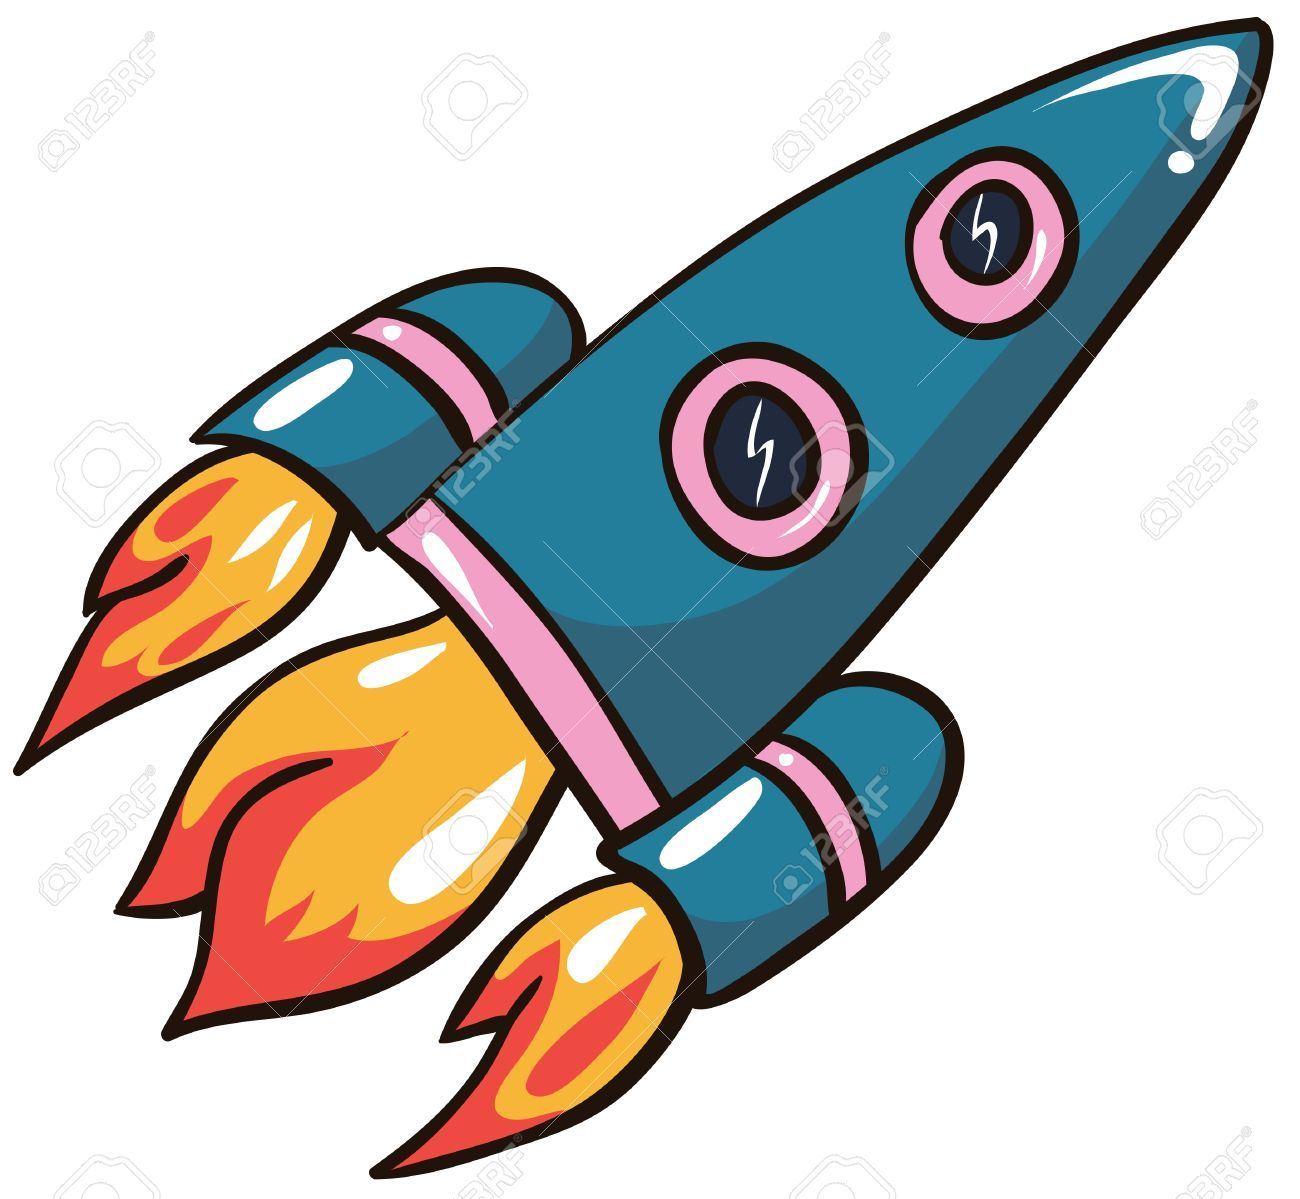 illustration cartoon rocket on white background royalty